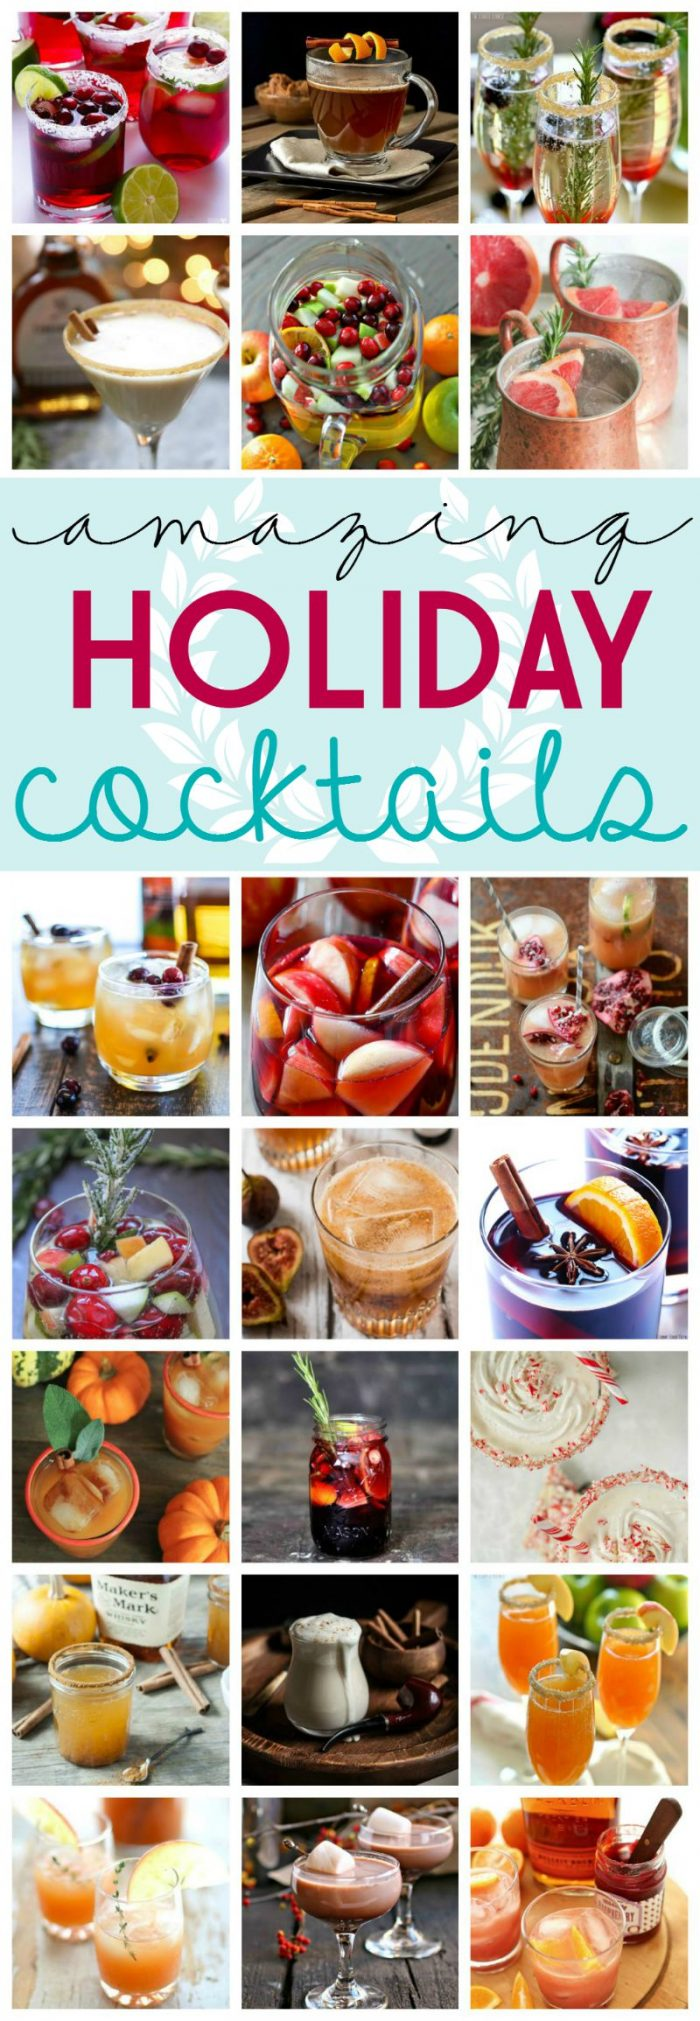 Holiday Cocktails Ideas on Frugal Coupon Living